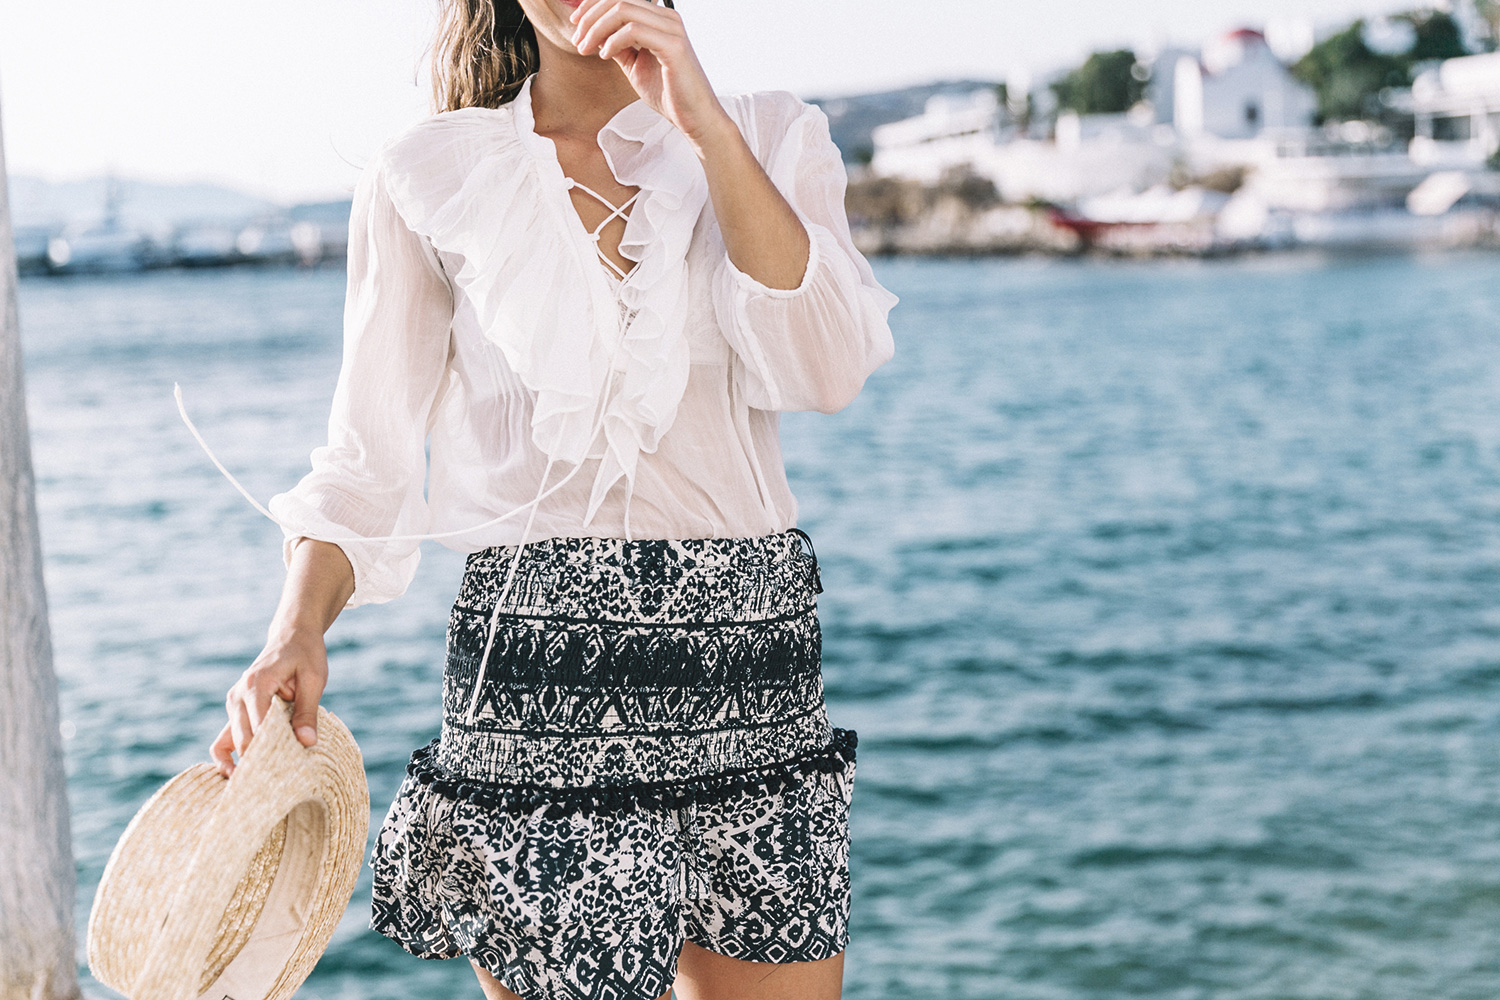 Lace_up_Blouse-Ralph_Lauren-Soludos_Espadrilles-Soludos_Escapes-Skirt-Straw_Hat-Canotier-Lack_Of_Color-Street_Style-Mykonos-Greece-Collage_Vintage-89